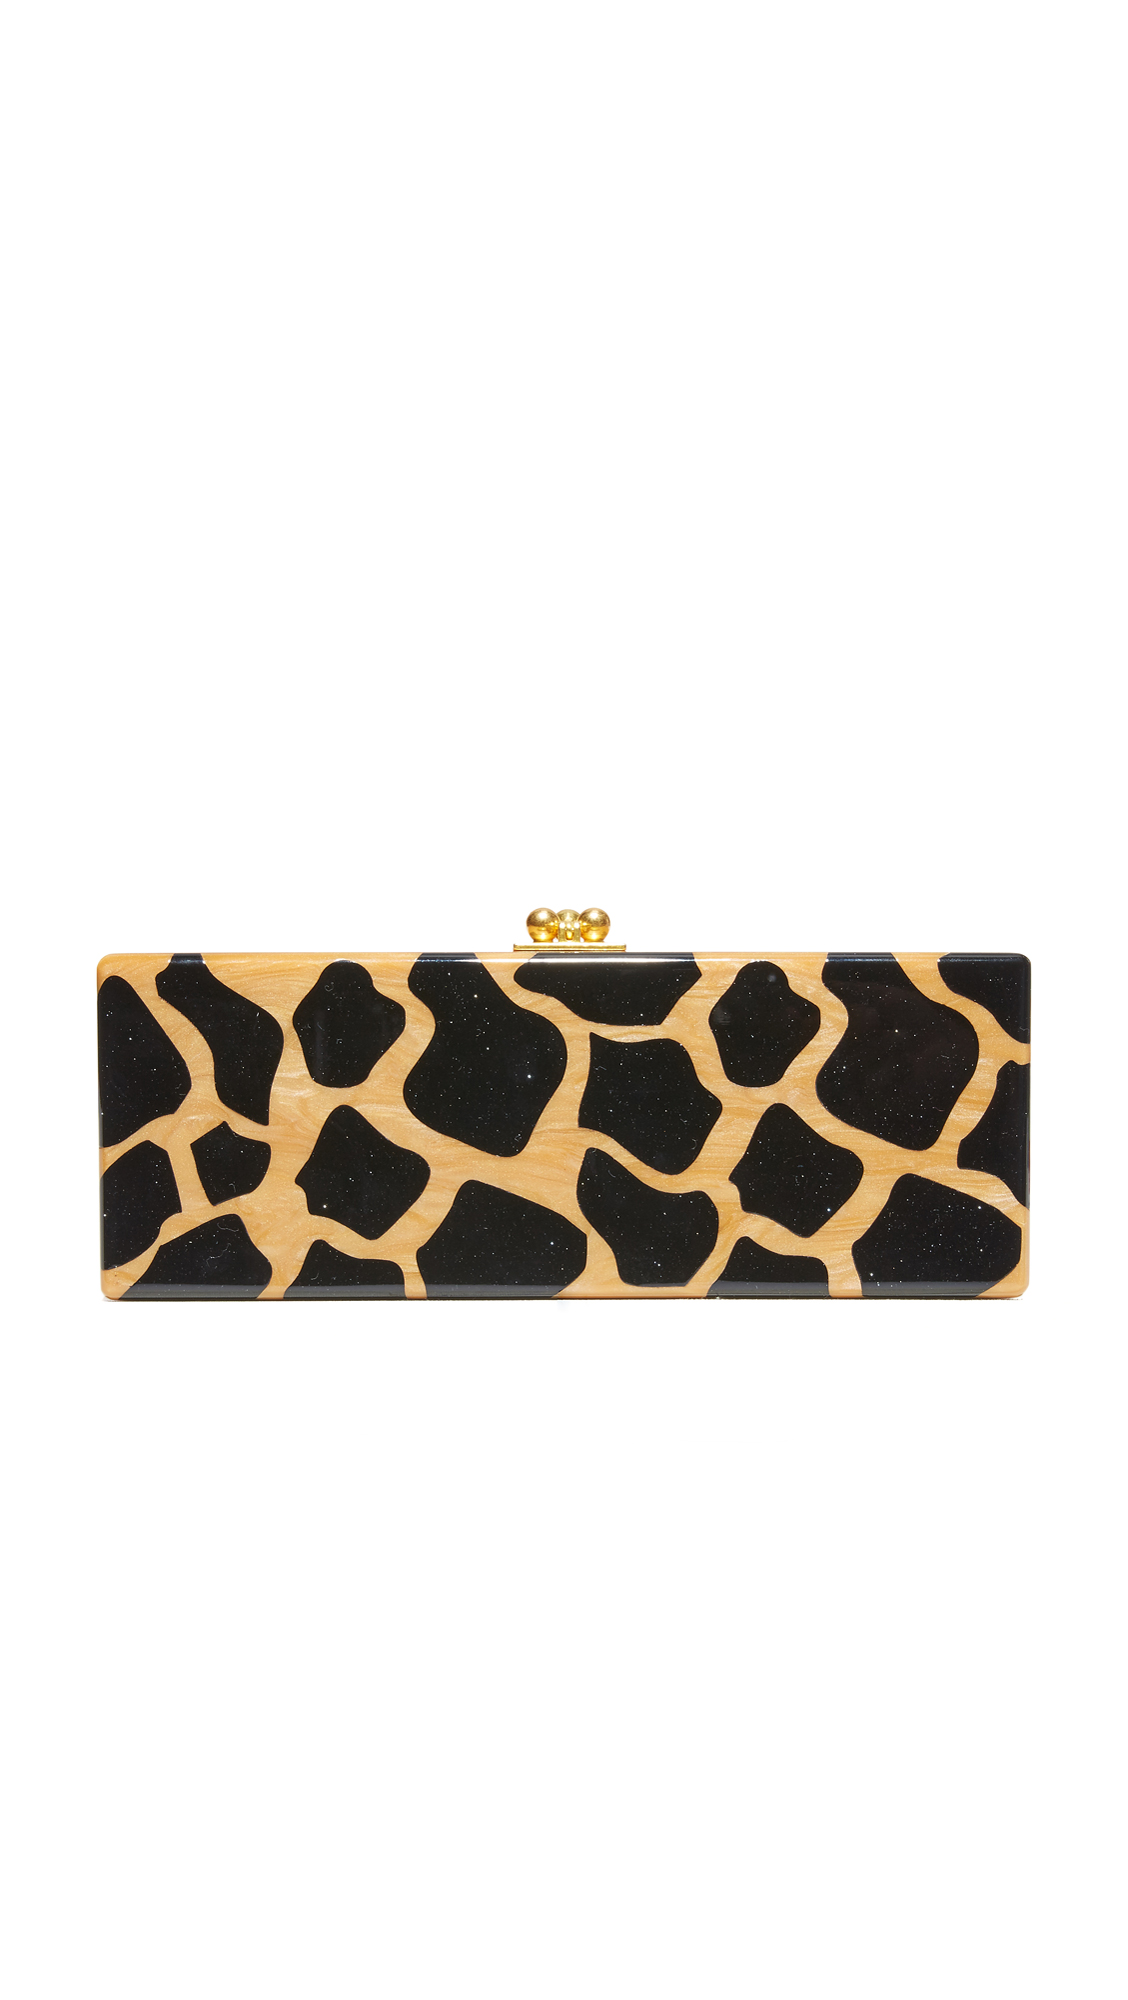 A sleek acrylic Edie Parker clutch with a swirling finish and a speckled giraffe spot motif. Kiss lock top. Unlined interior with mirror panel. Dust bag and cleaning cloth included. Fabric: Acrylic. Weight: 22oz / 0.62kg. Made